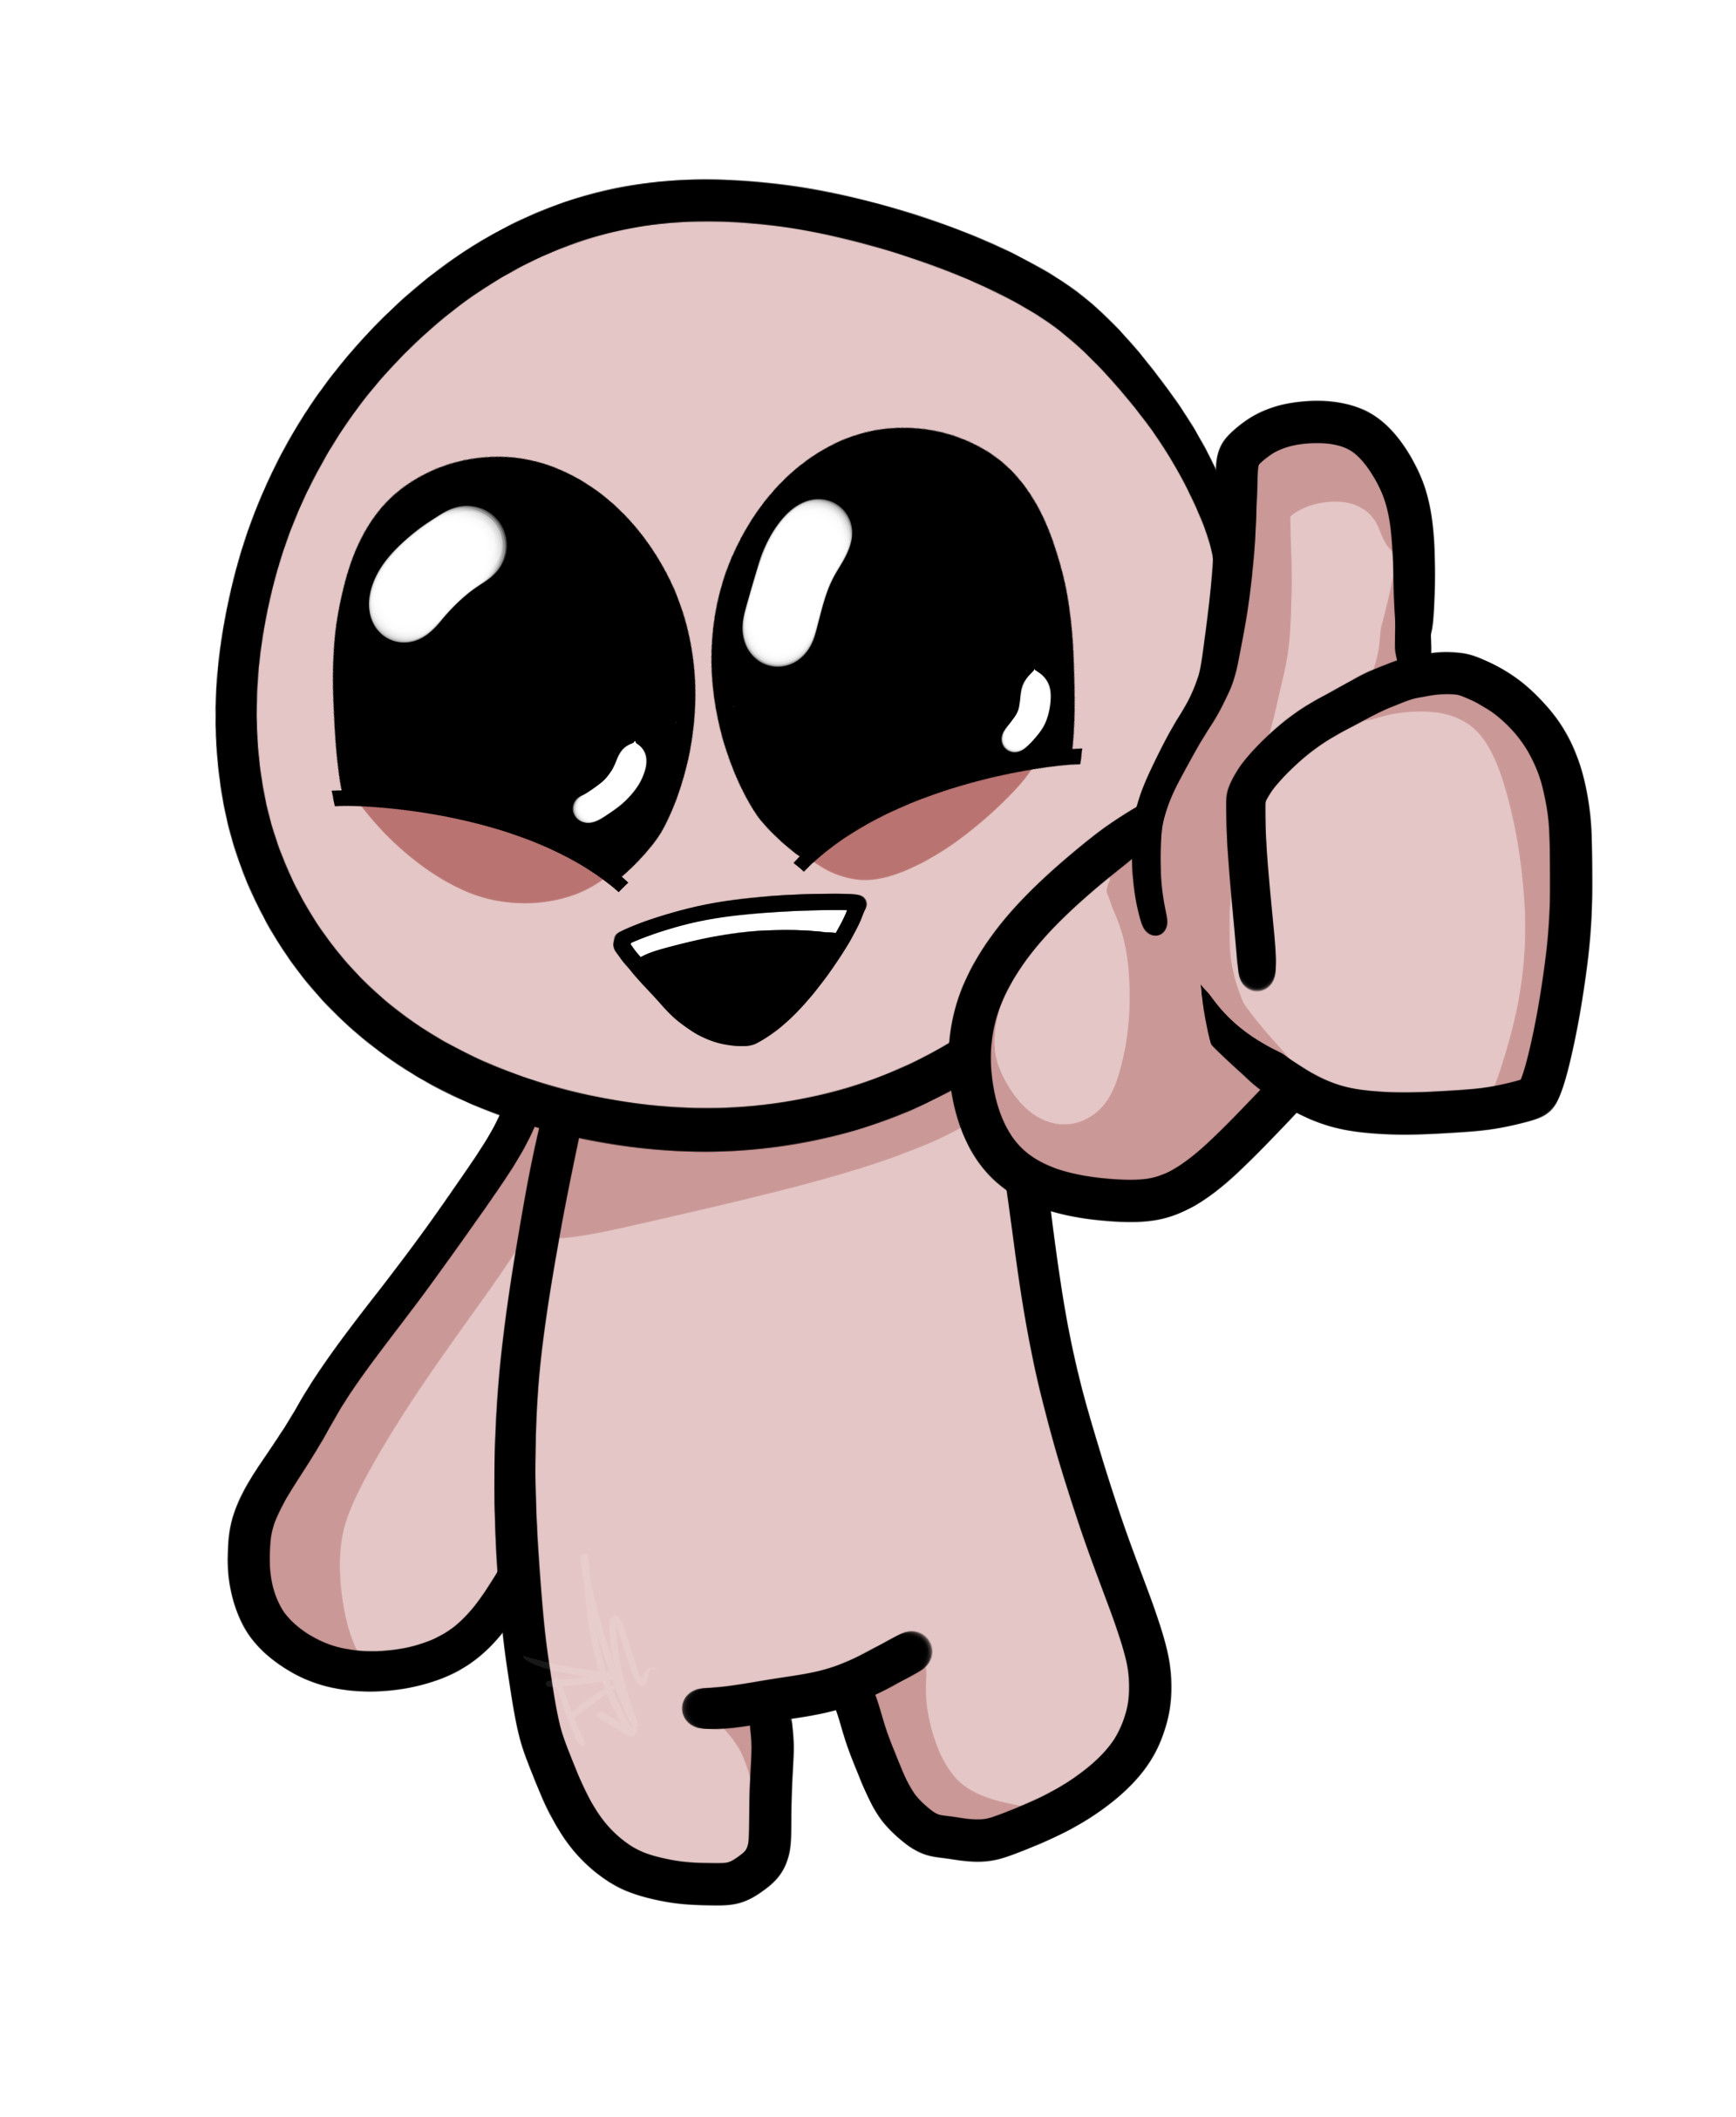 Isaac Giving Thumbs Up By TVisDaddy On Newgrounds